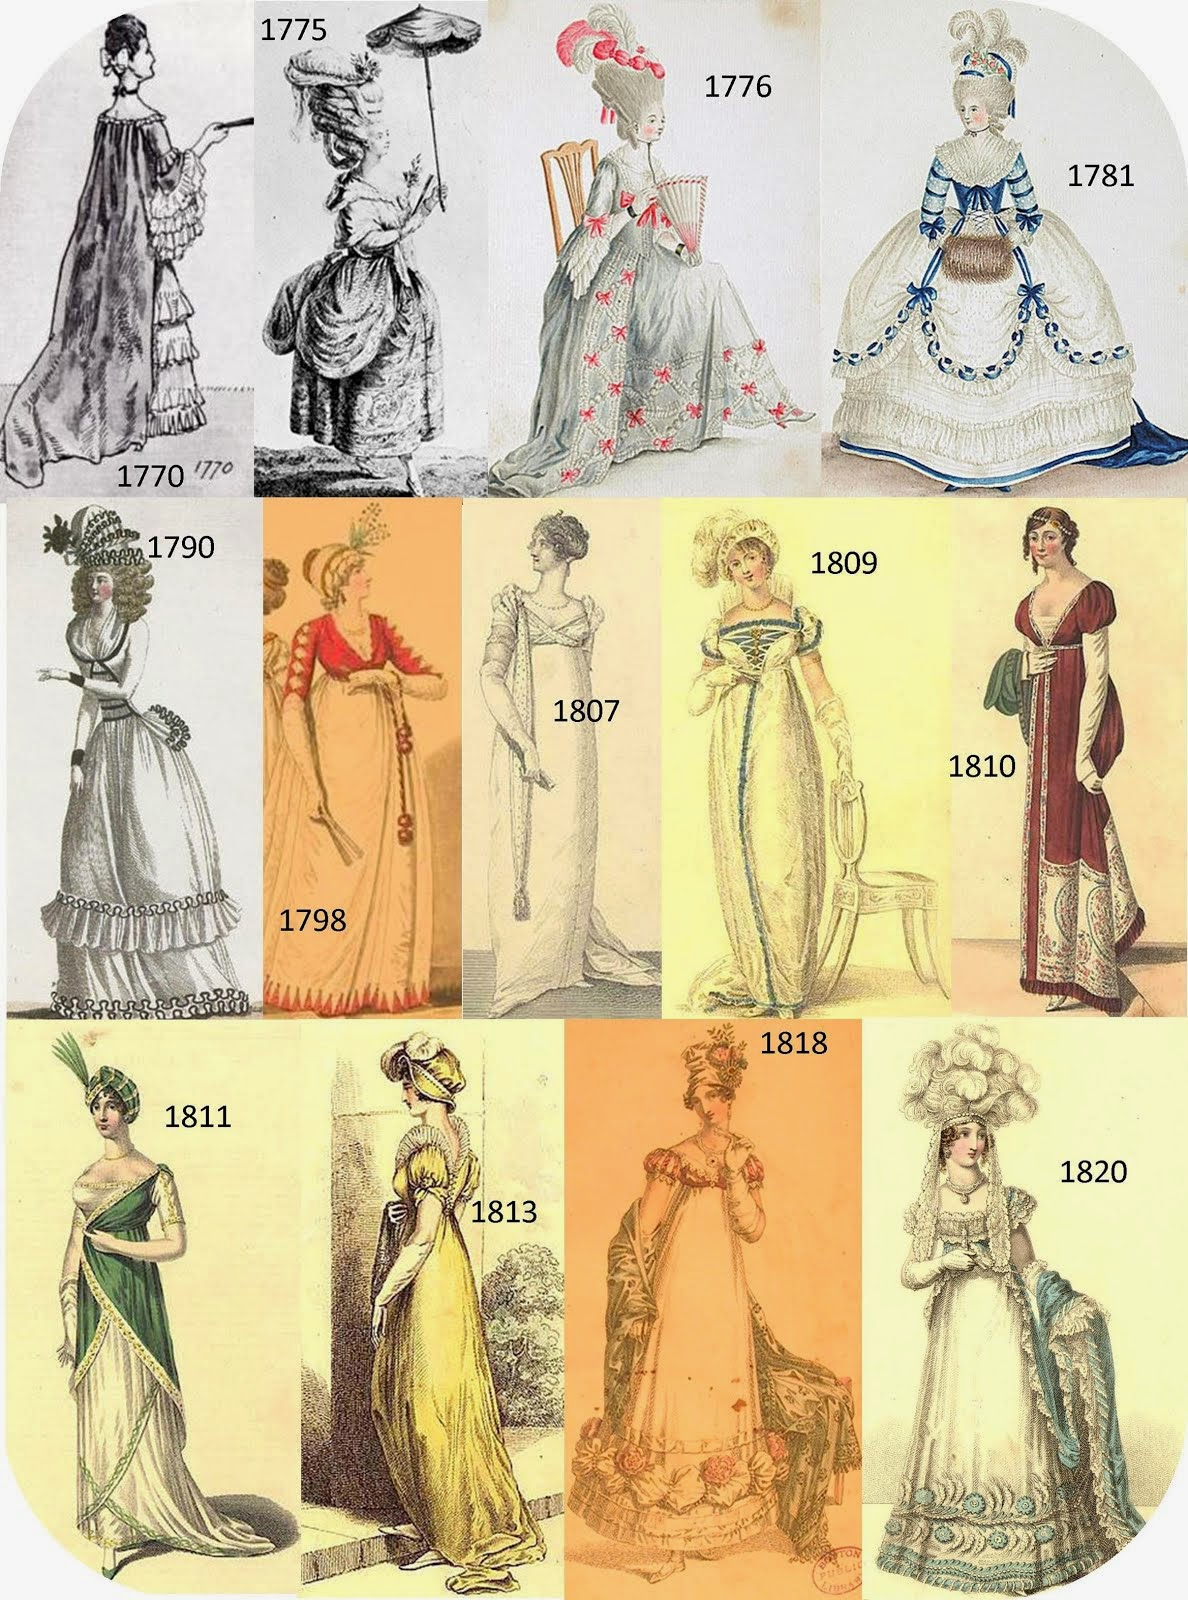 costume adoratia th century fashion dress before and after the womens fashions 1770 1820